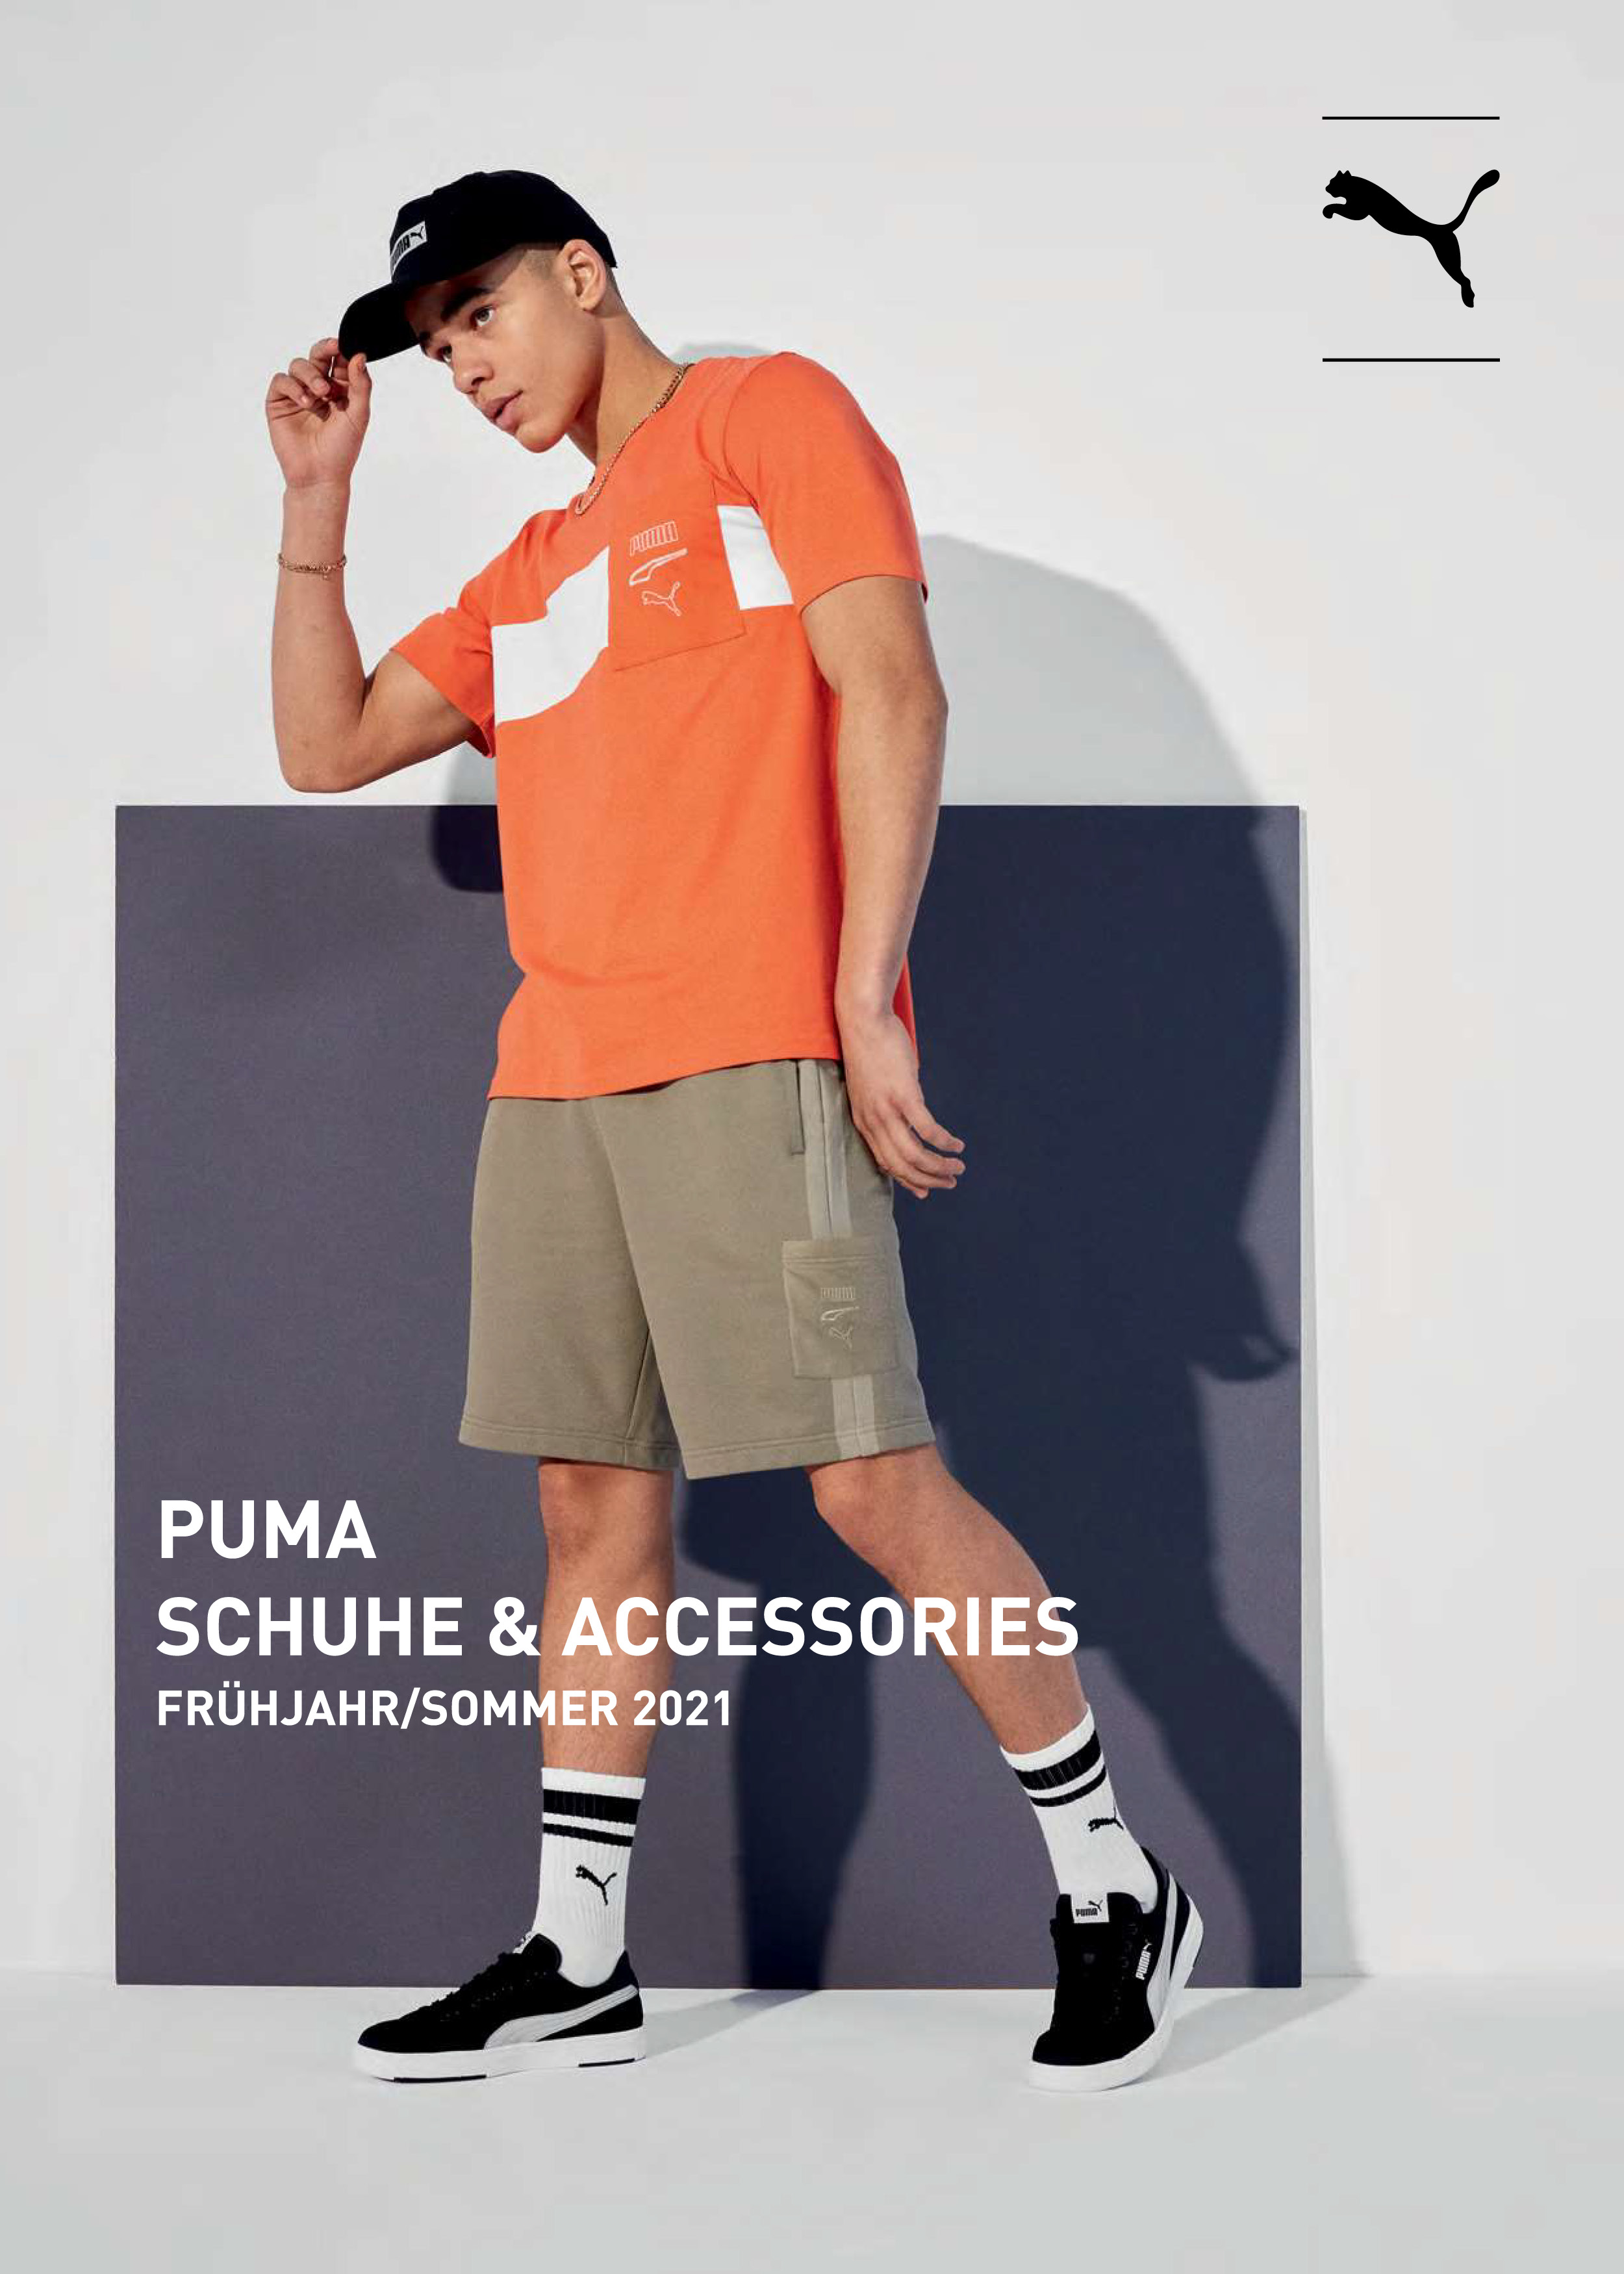 Katalog Puma Schuhe & Accessories